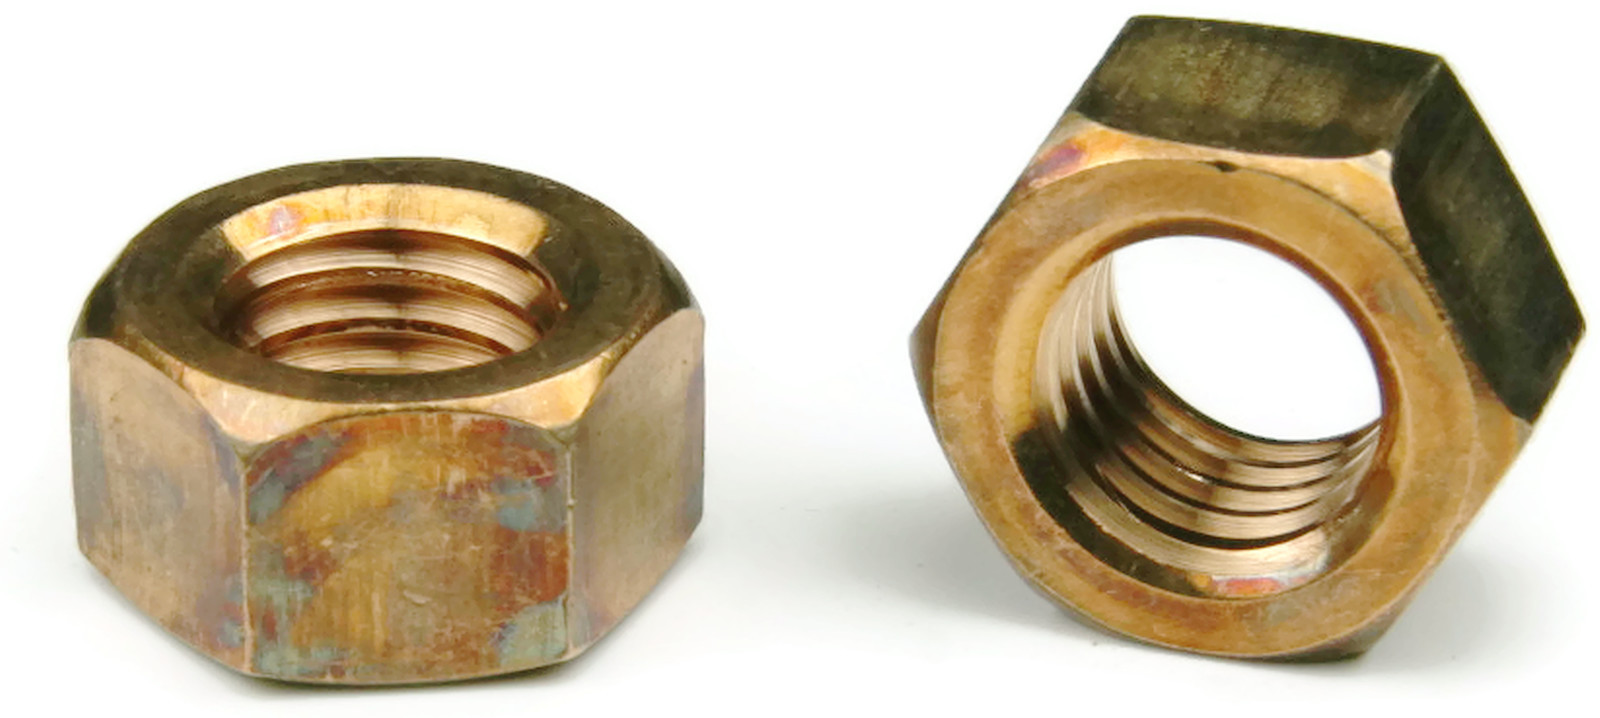 Qty 25 Silicon Bronze Finished Hex Nut UNC 7//16-14